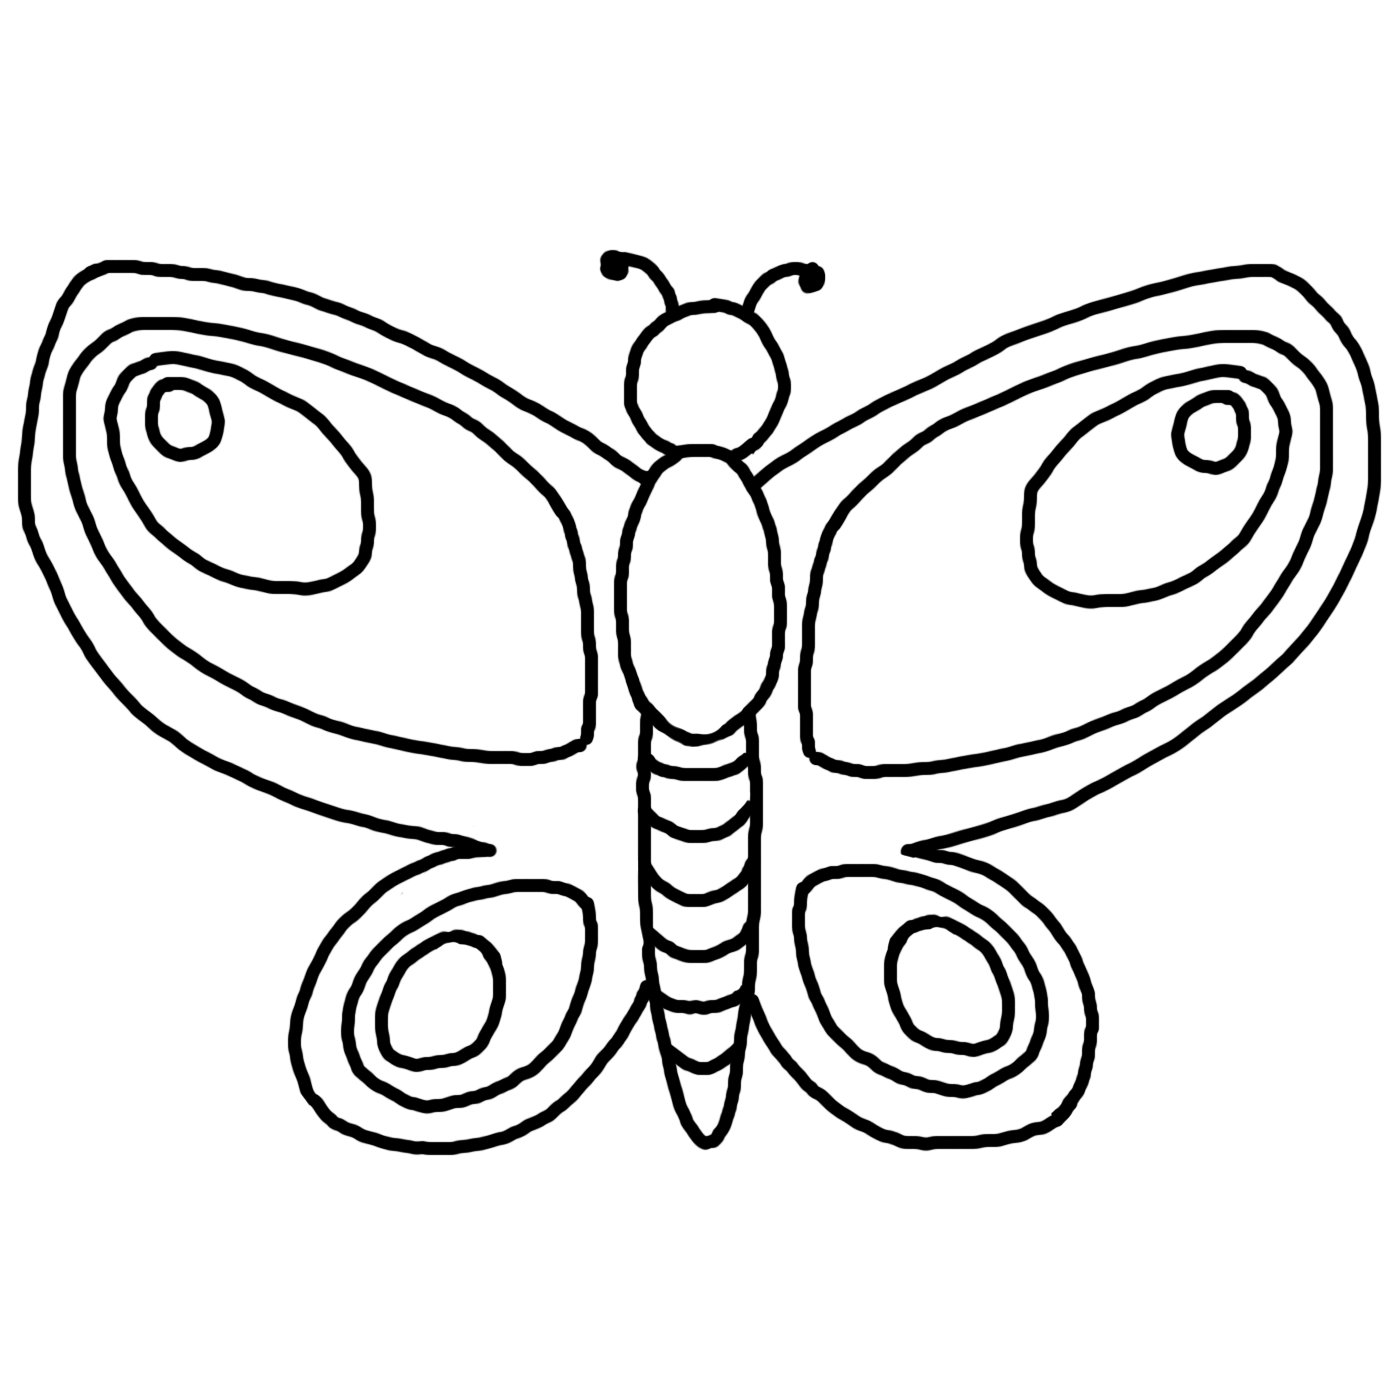 Butterfly clip art line drawing. Free cute download outline